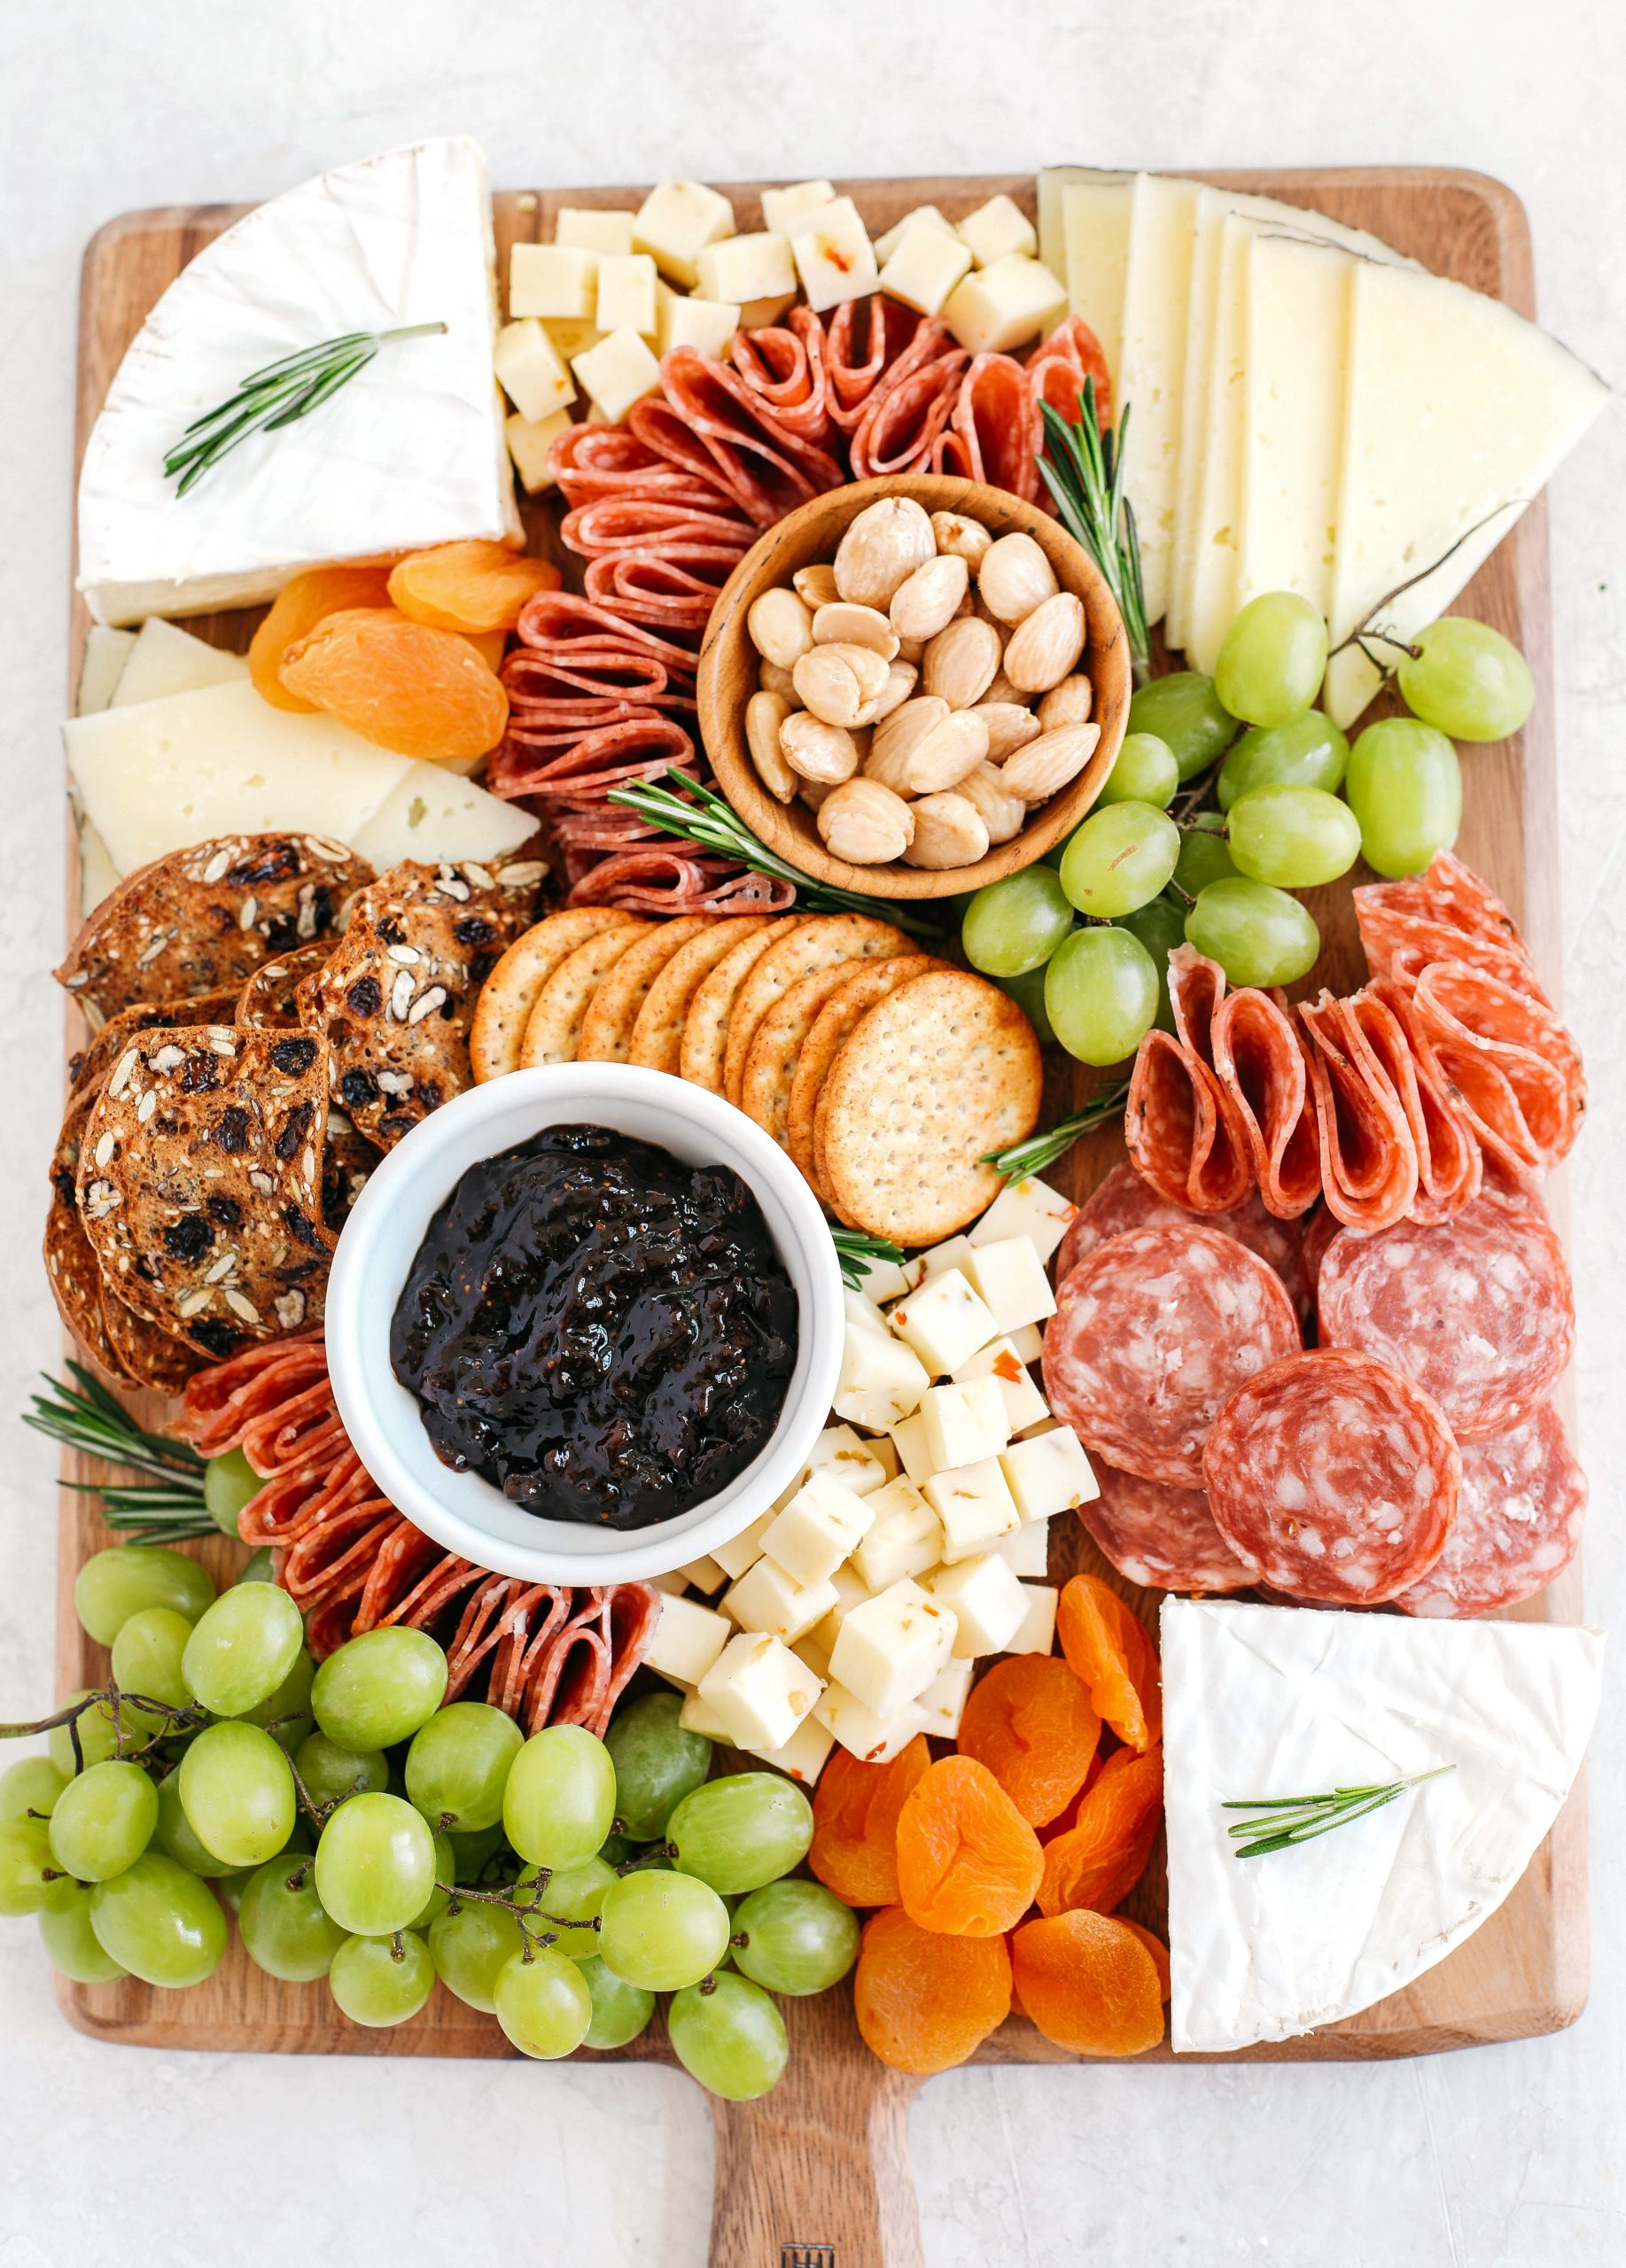 My favorite tips and tricks for building a perfect cheeseboard with all your favorite charcuterie that is simple, beautiful and made in just minutes!